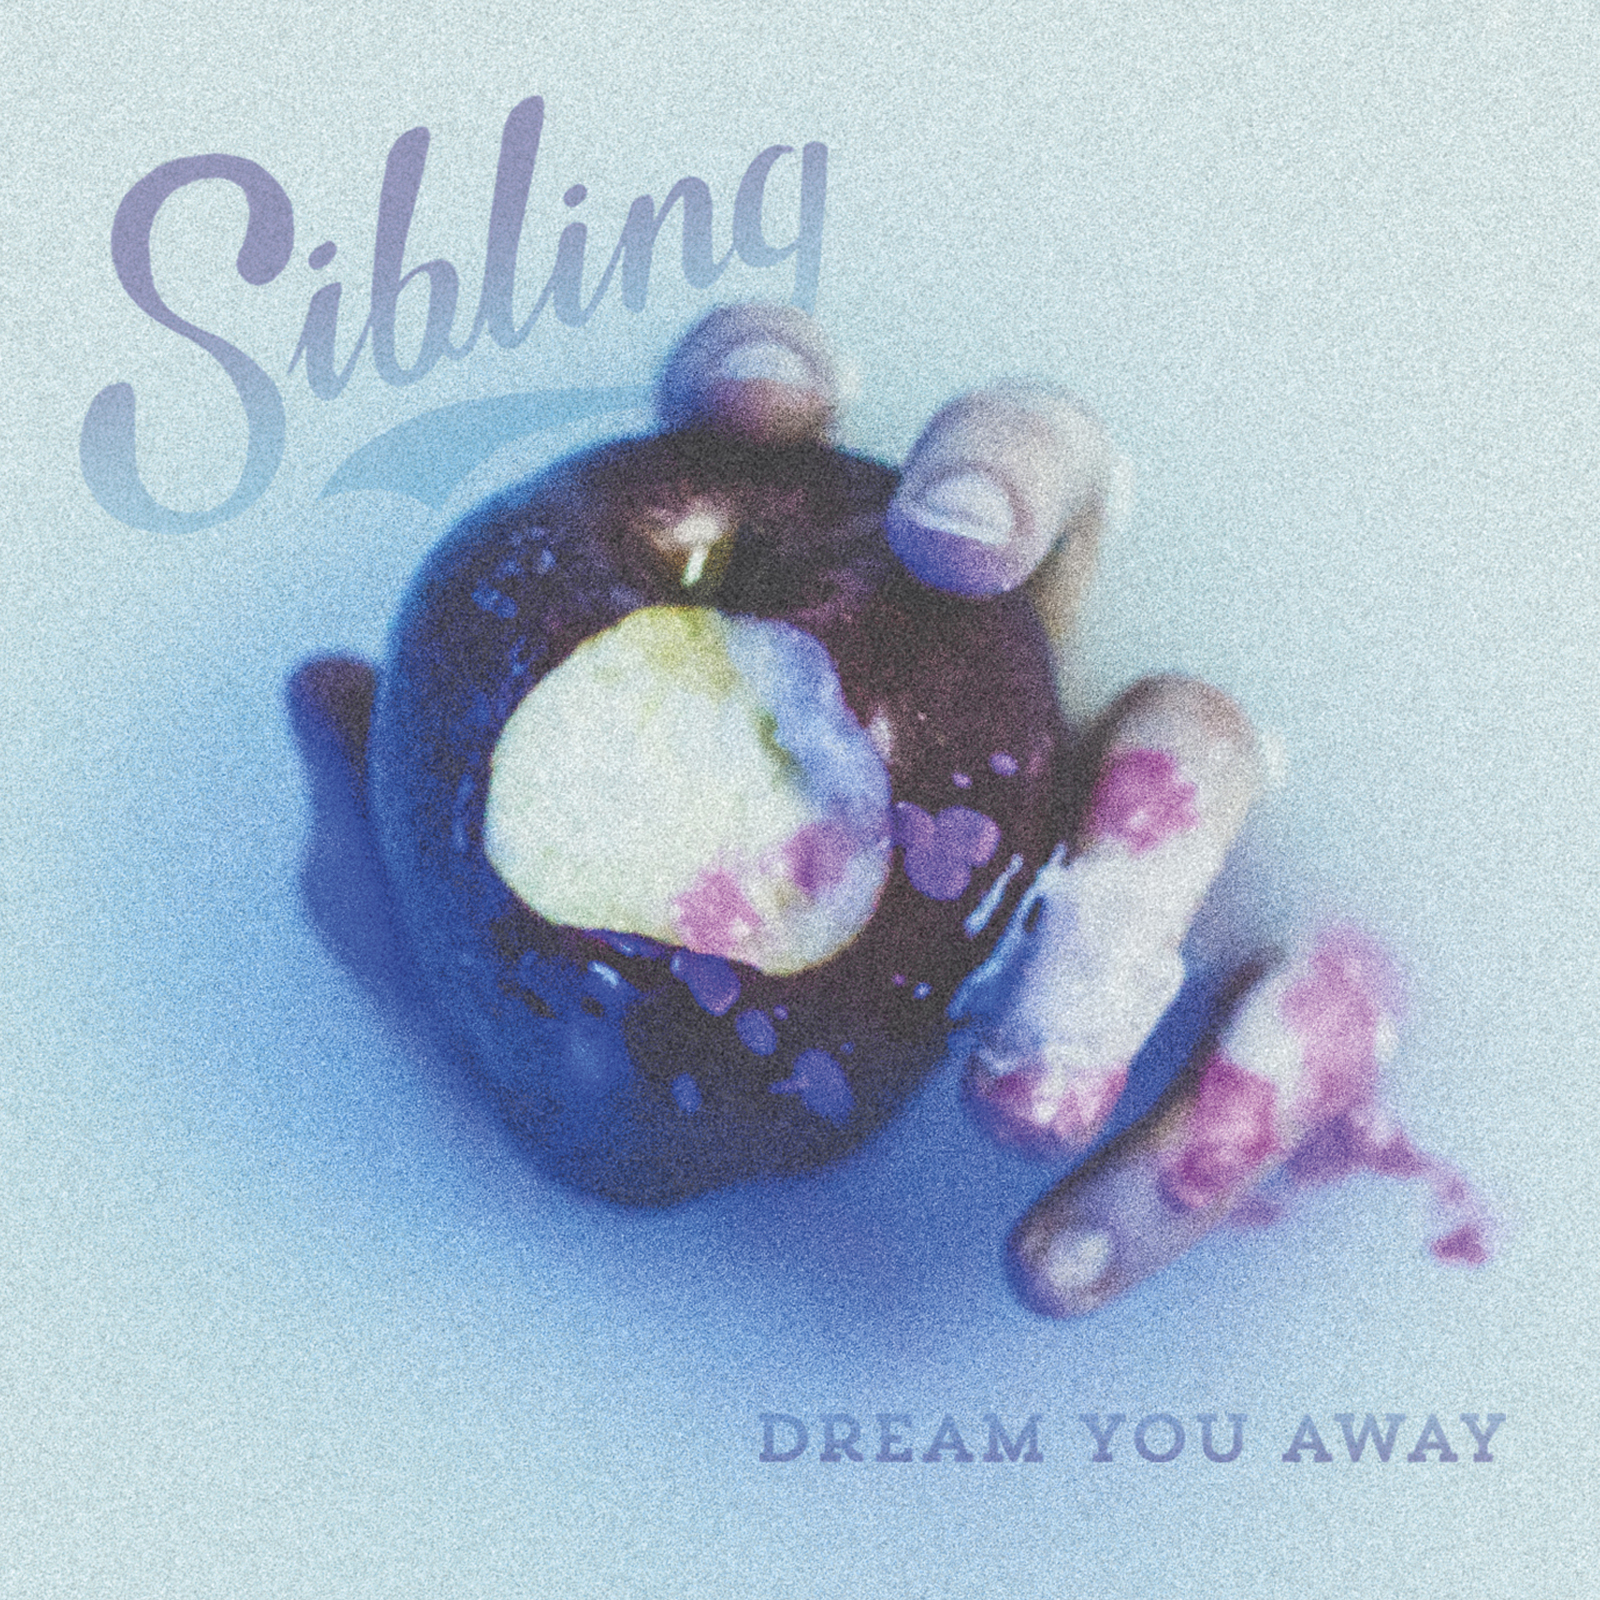 Sibling - 'Dream You Away / Miserable Love' CD